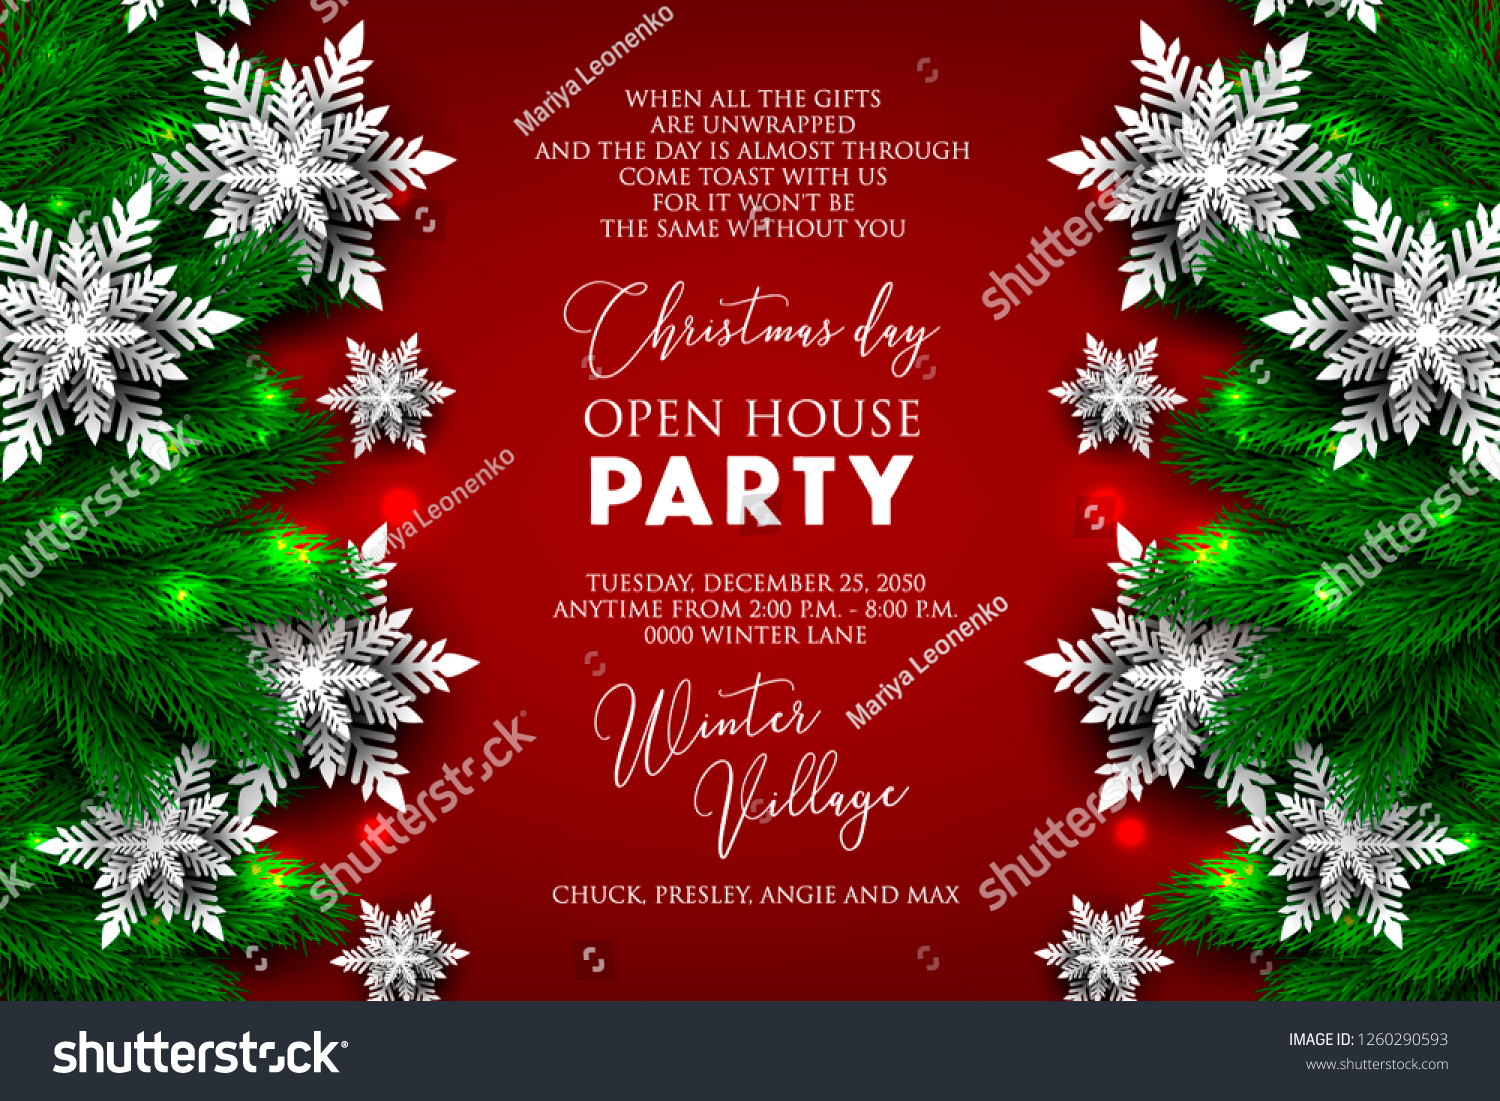 Christmas Party Invitation Greeting Card Paper Stock Vector (Royalty Free)  1260290593